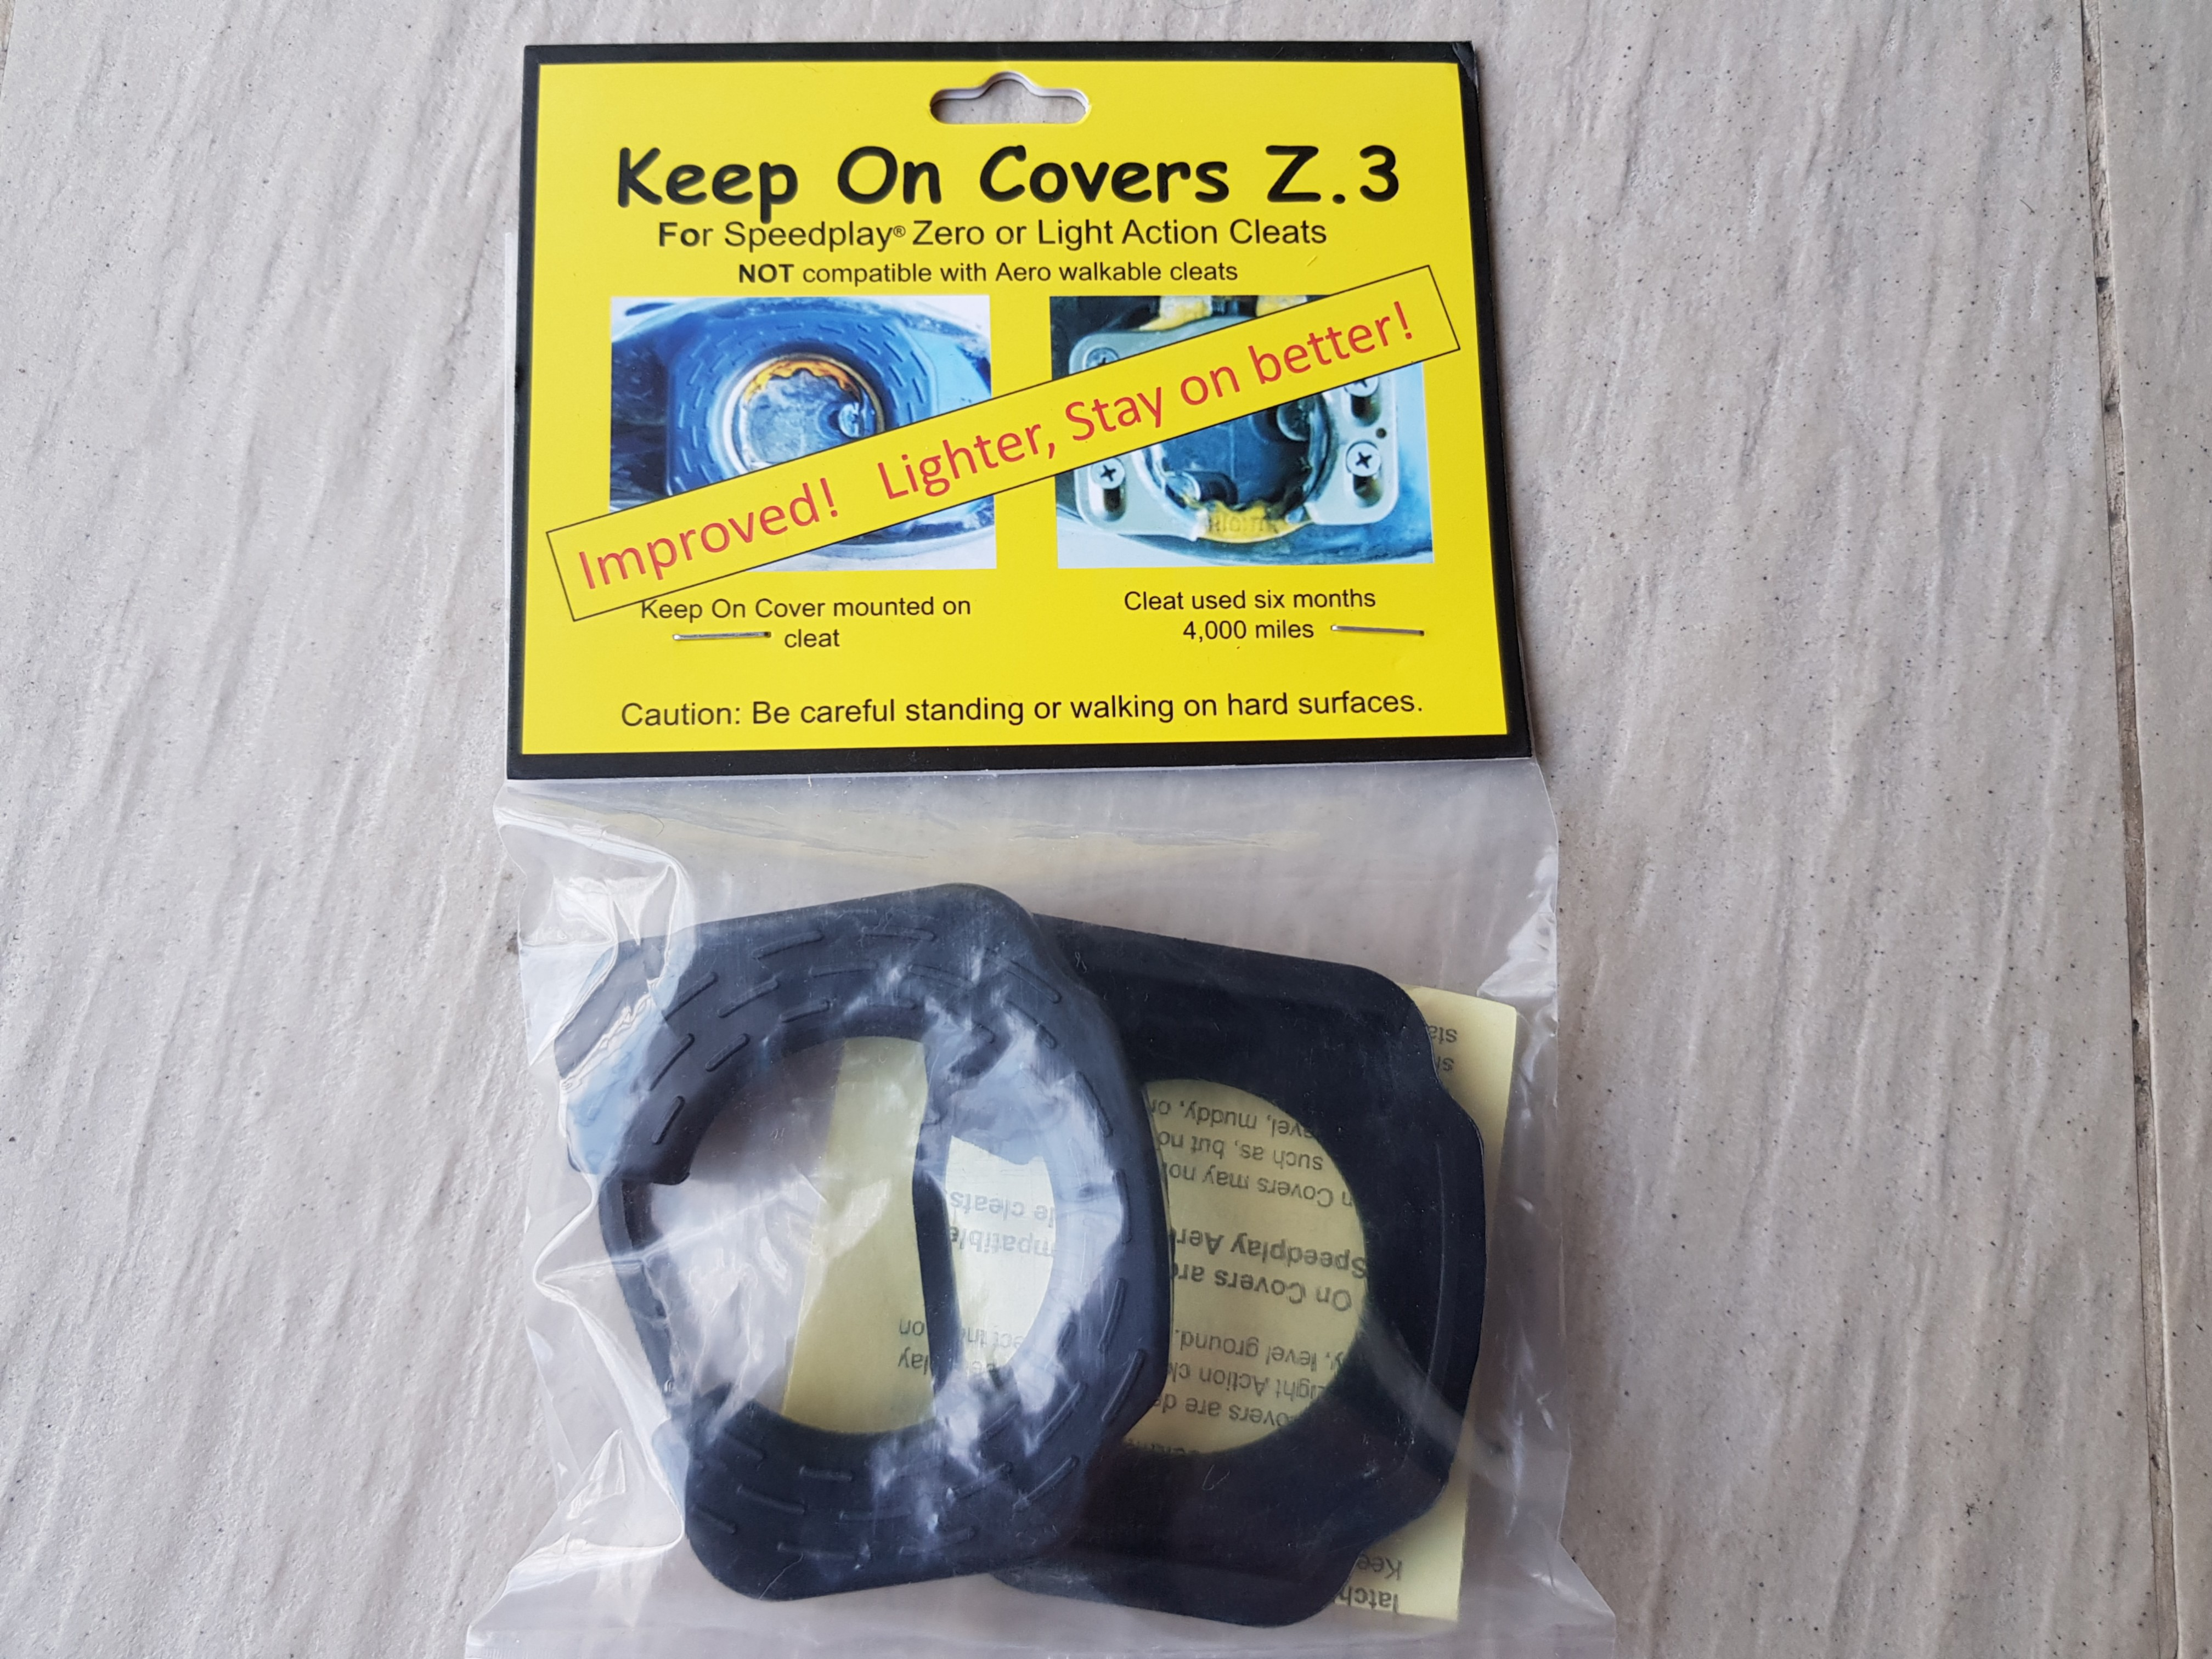 Stay On Cleats Z.2 for Speedplay Zero or Light Action Cleats Protection Cover